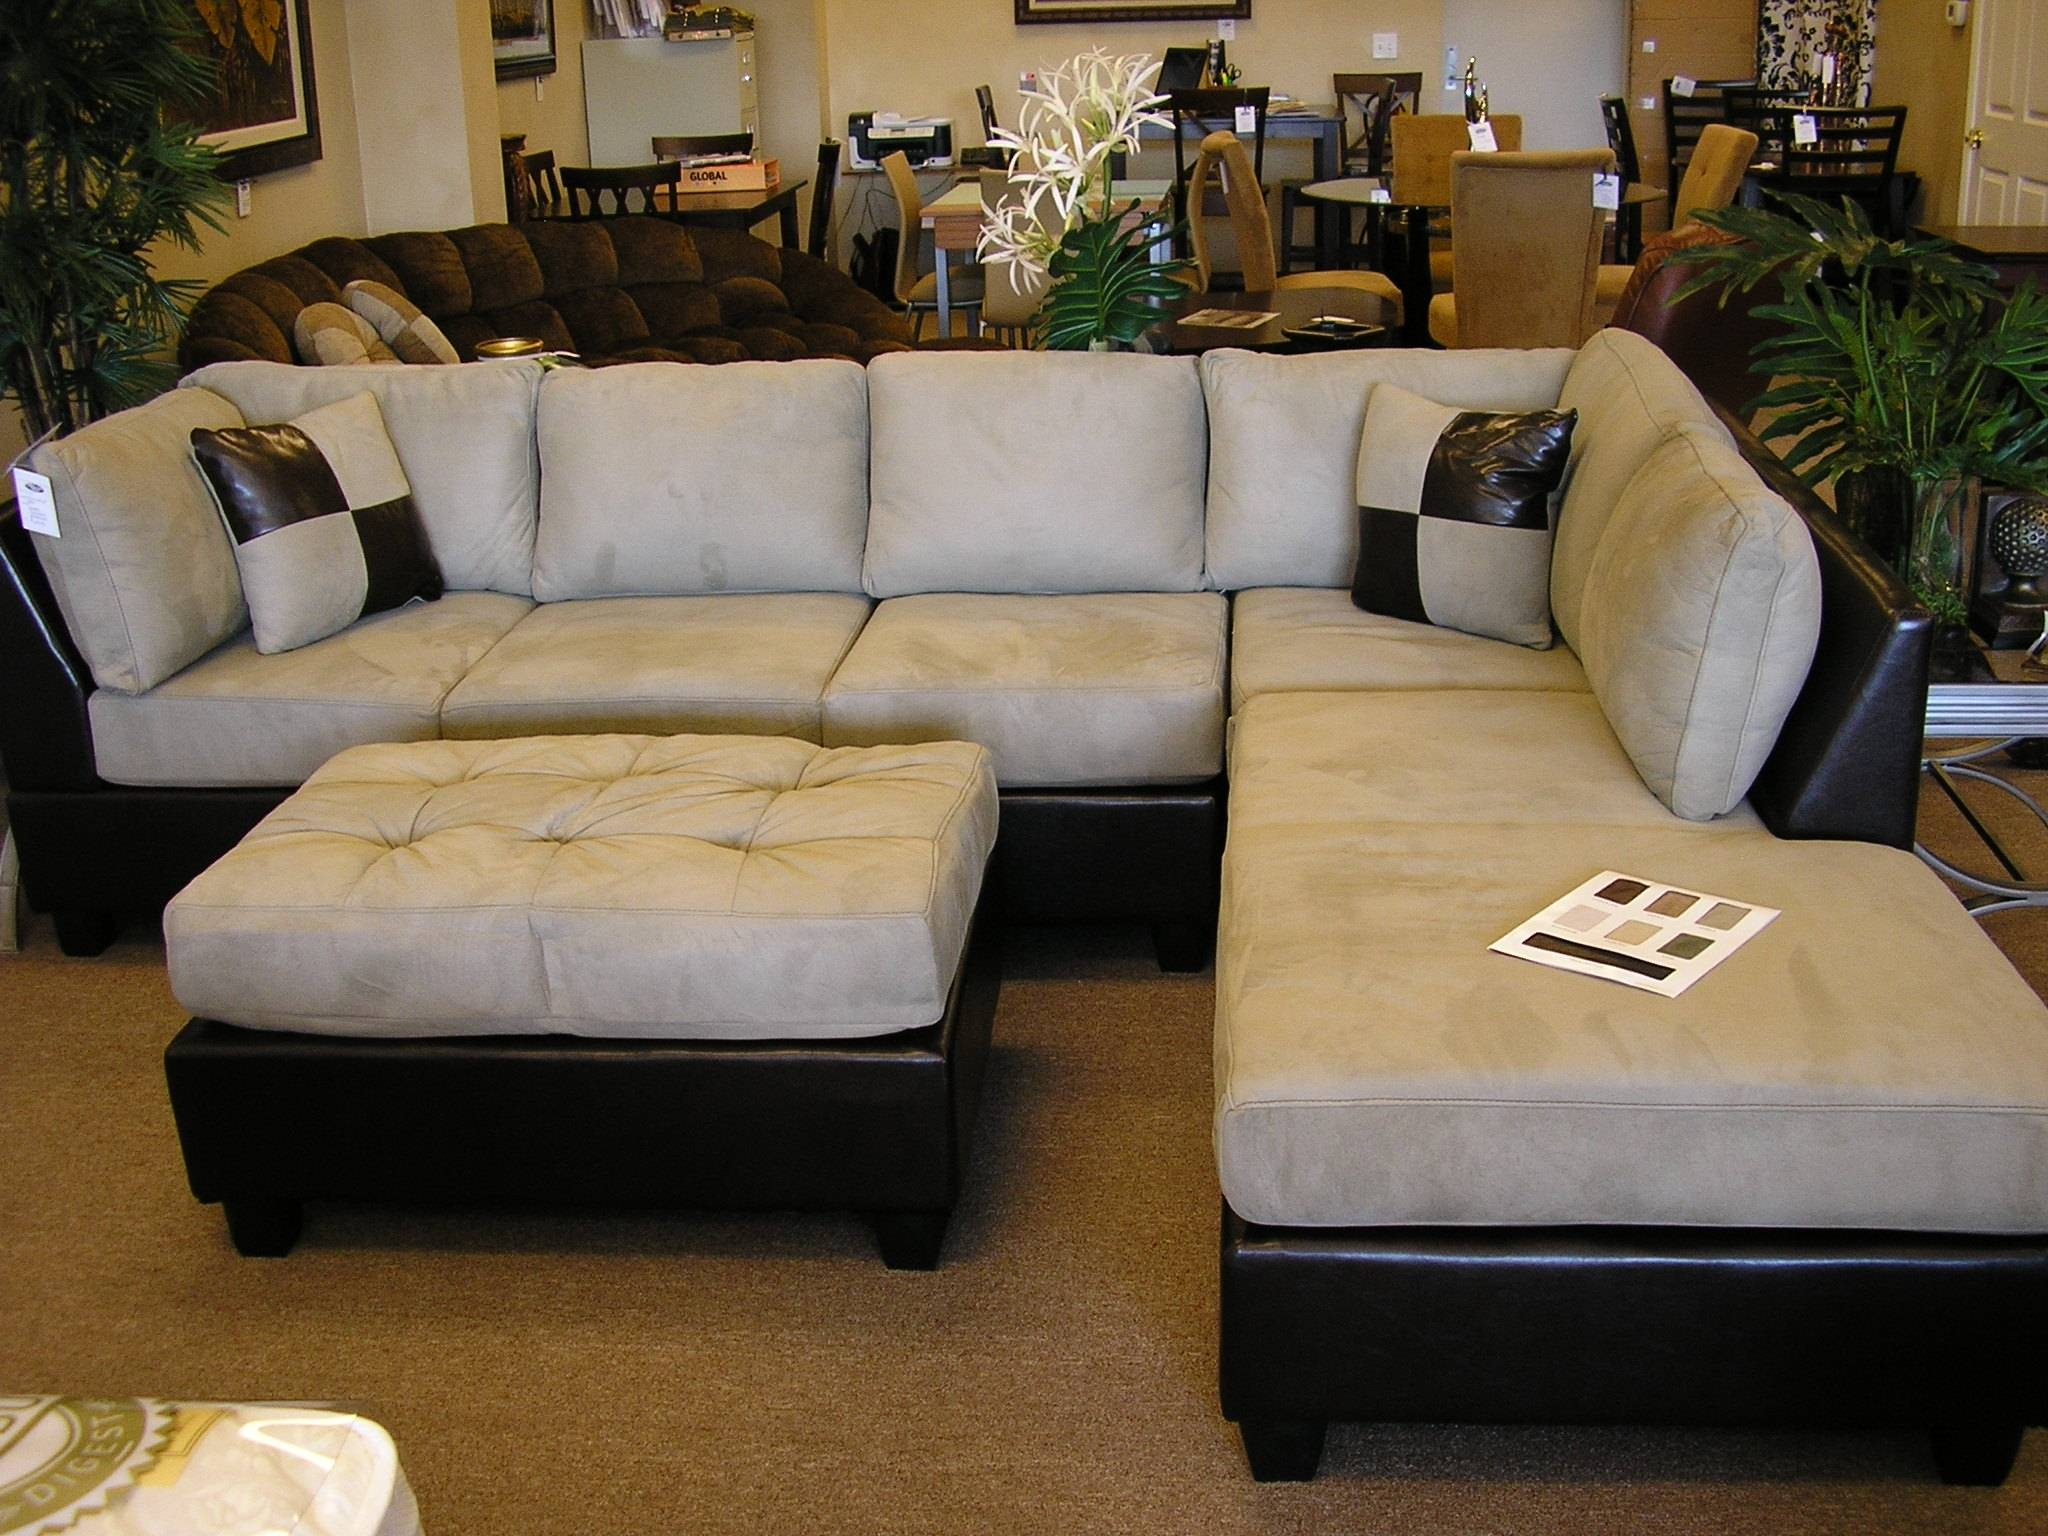 Cozy Sectional Sofa With Chaise And Ottoman 29 About Remodel Down with regard to Sofa With Chaise and Ottoman (Image 11 of 30)